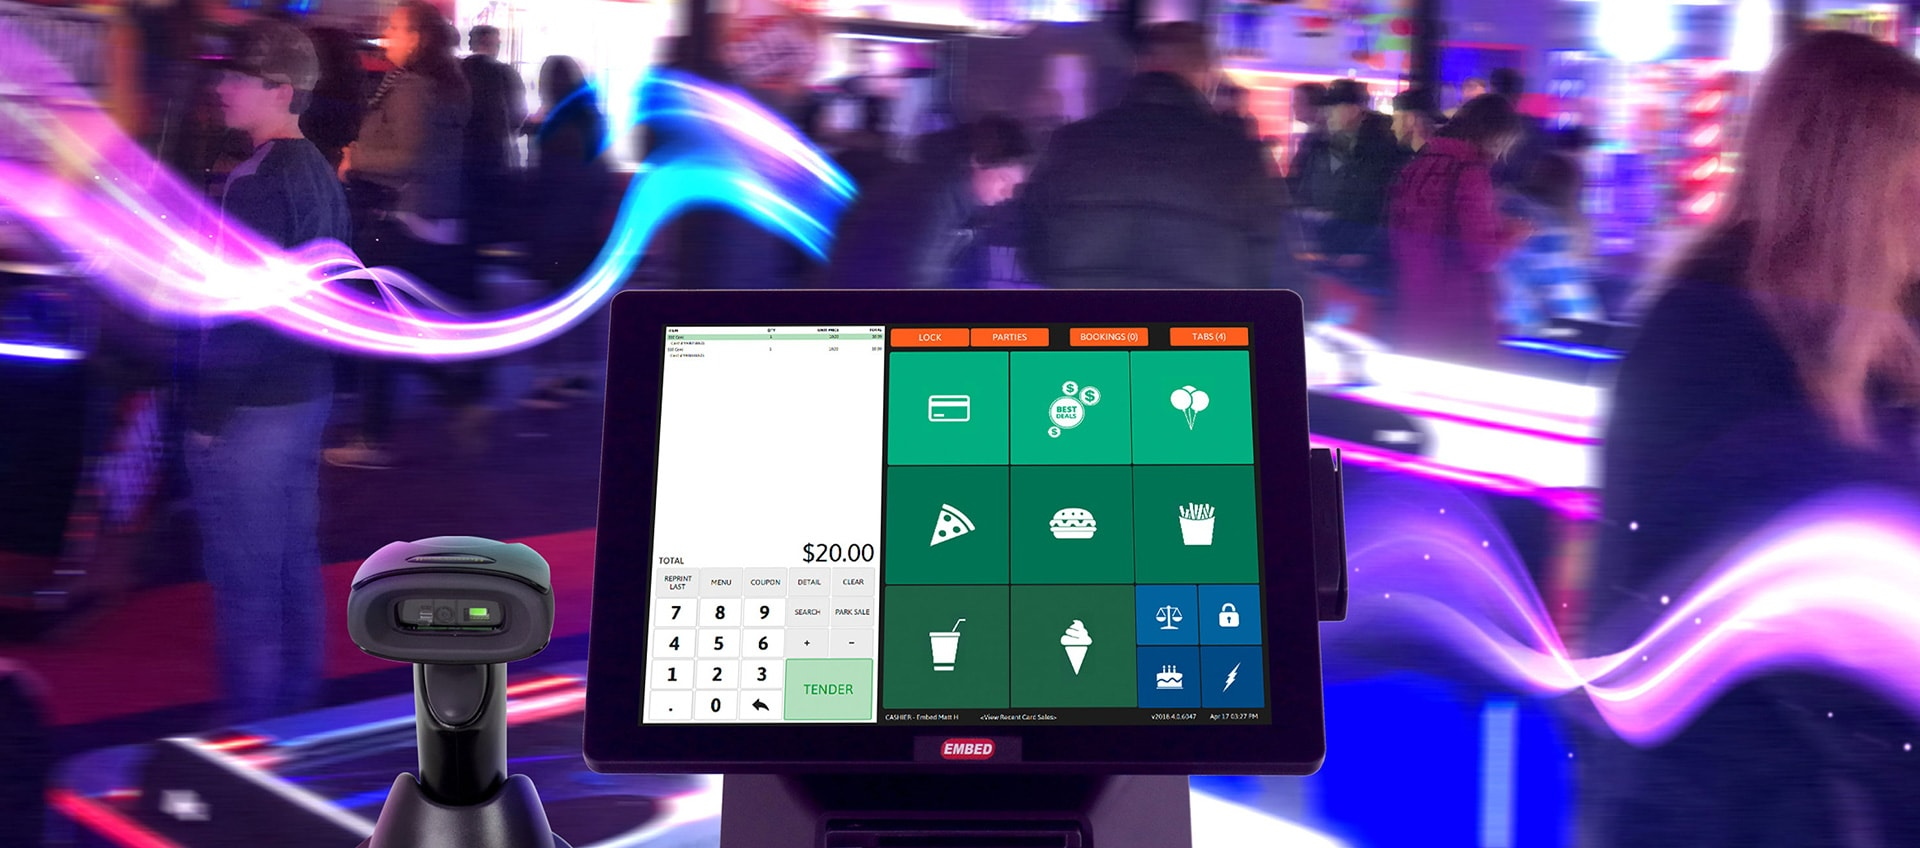 arcade point of sale systems